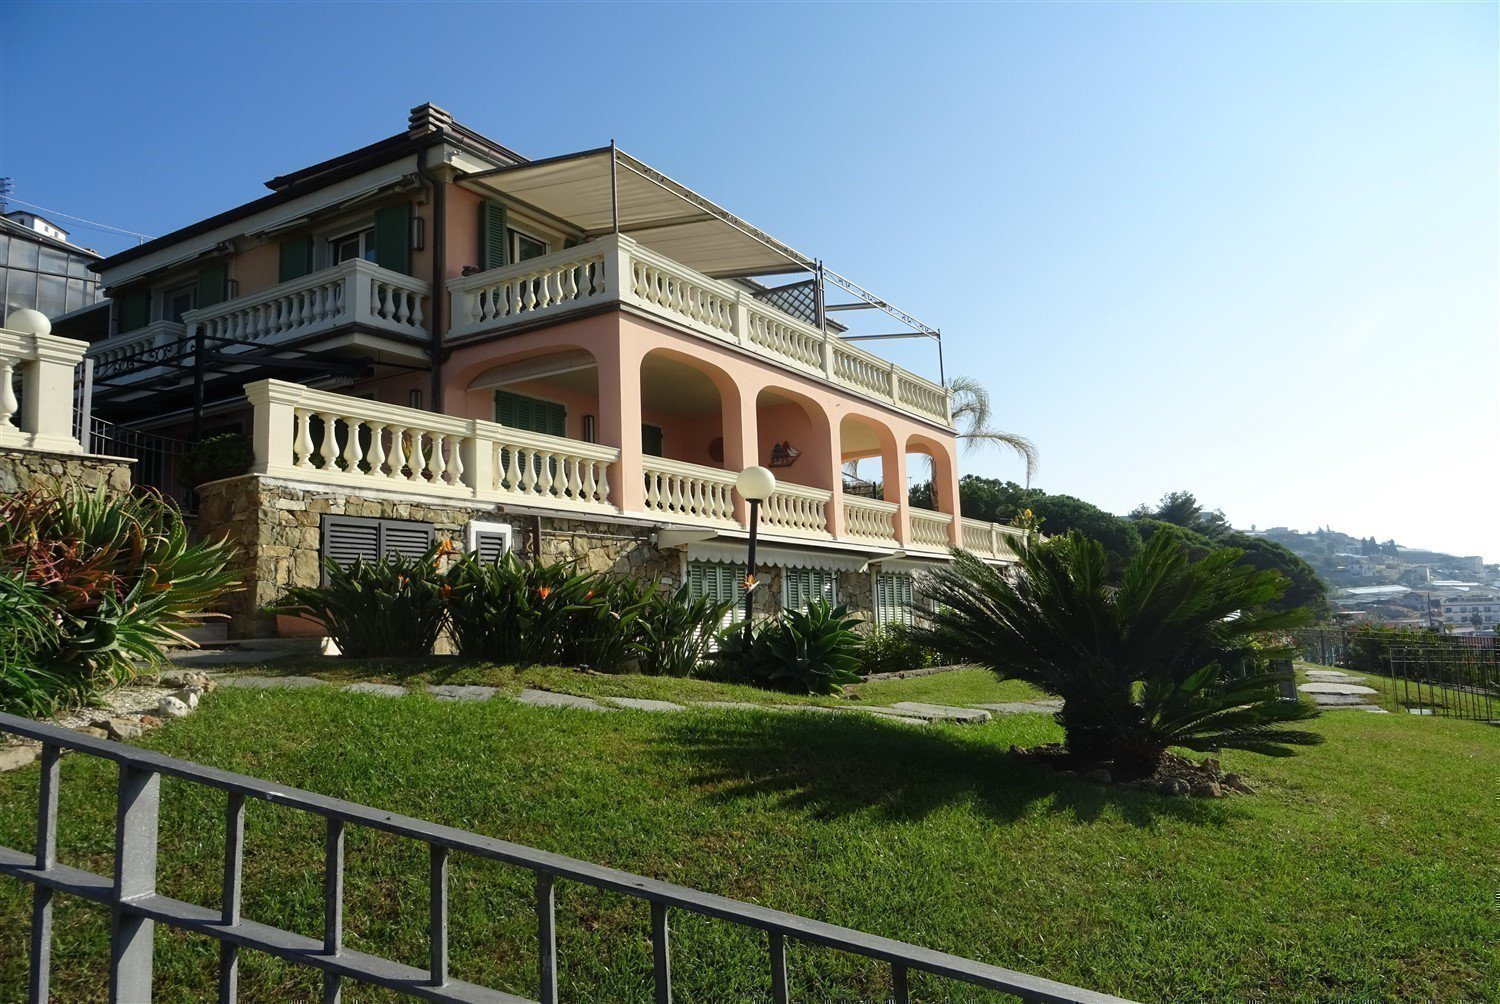 Dream apartment for sale in Sanremo sea-external of the real estate